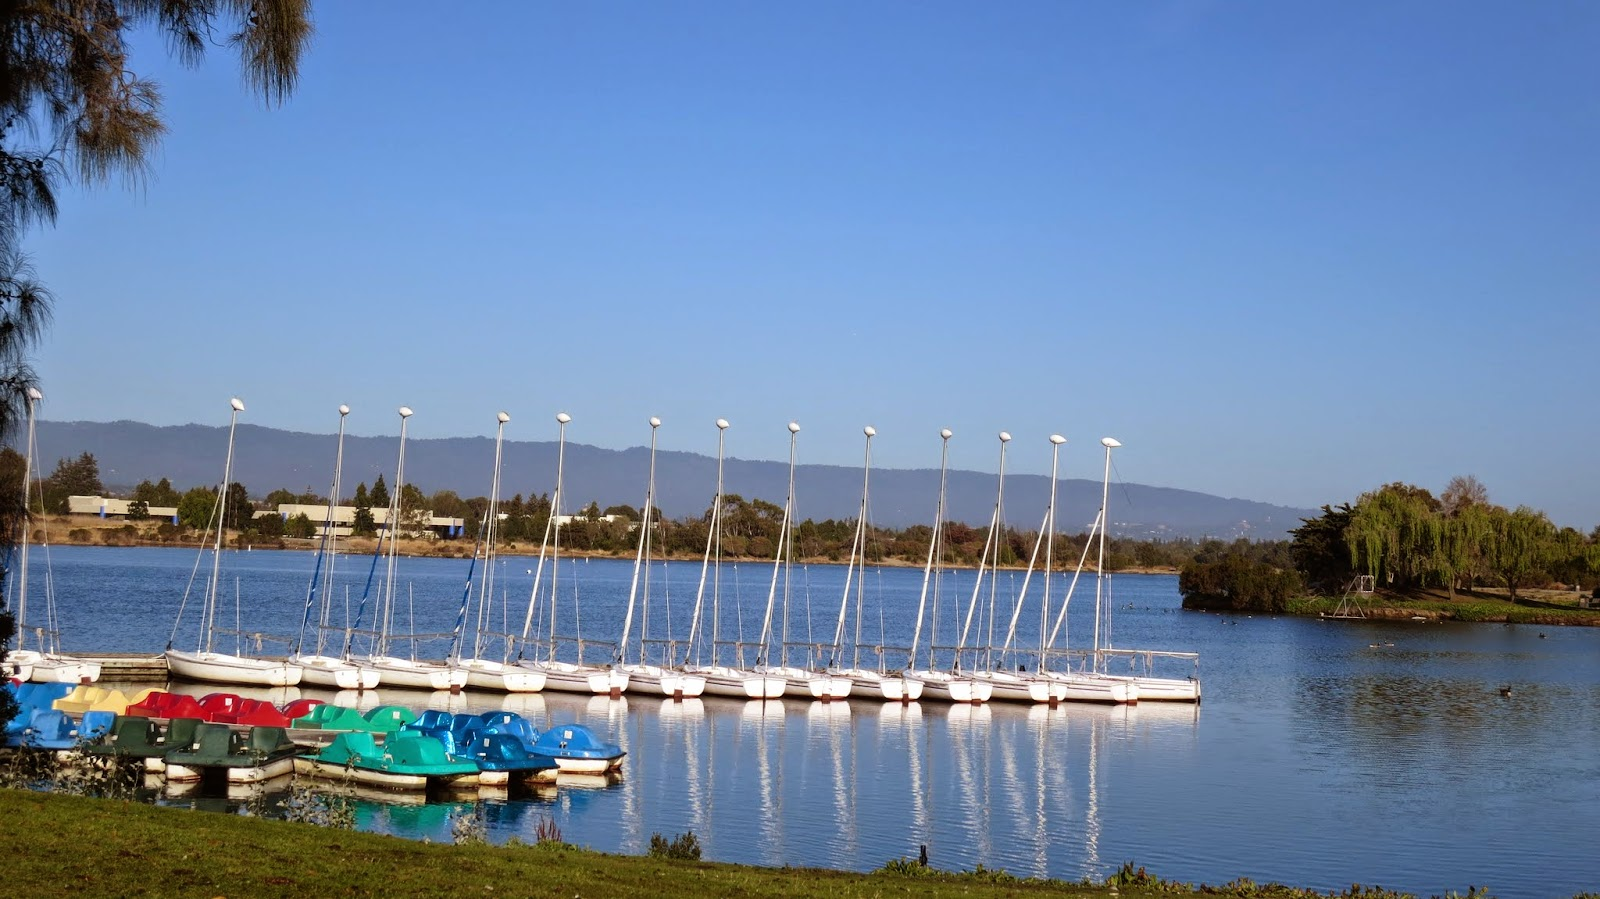 Boats on Shoreline Lake in Mountain View, California